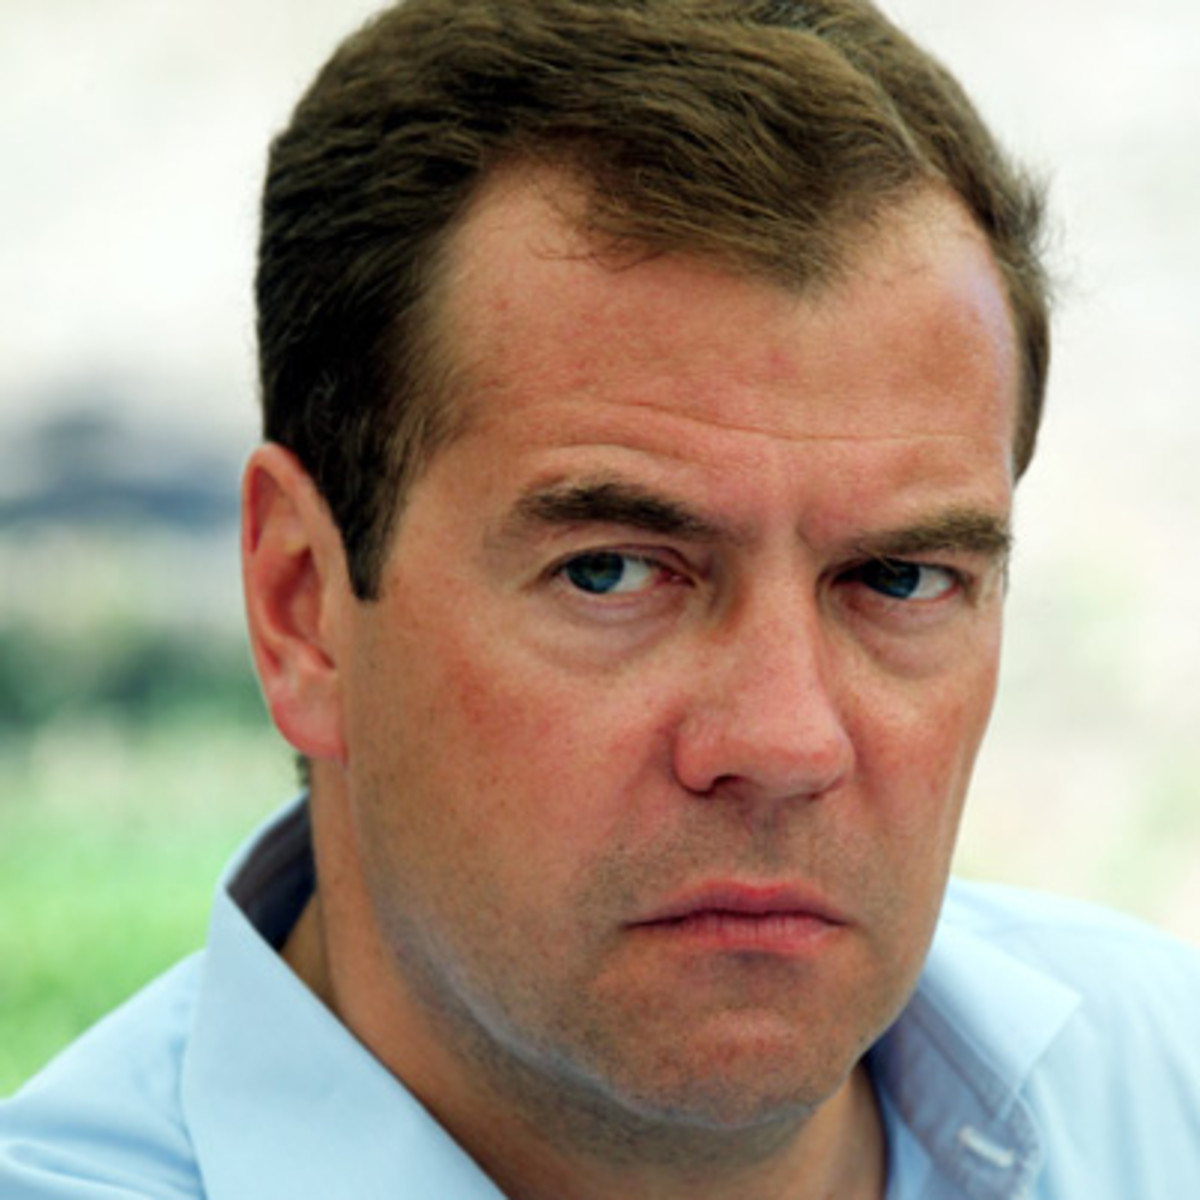 Personal life and biography of Dmitry Anatolyevich Medvedev 62